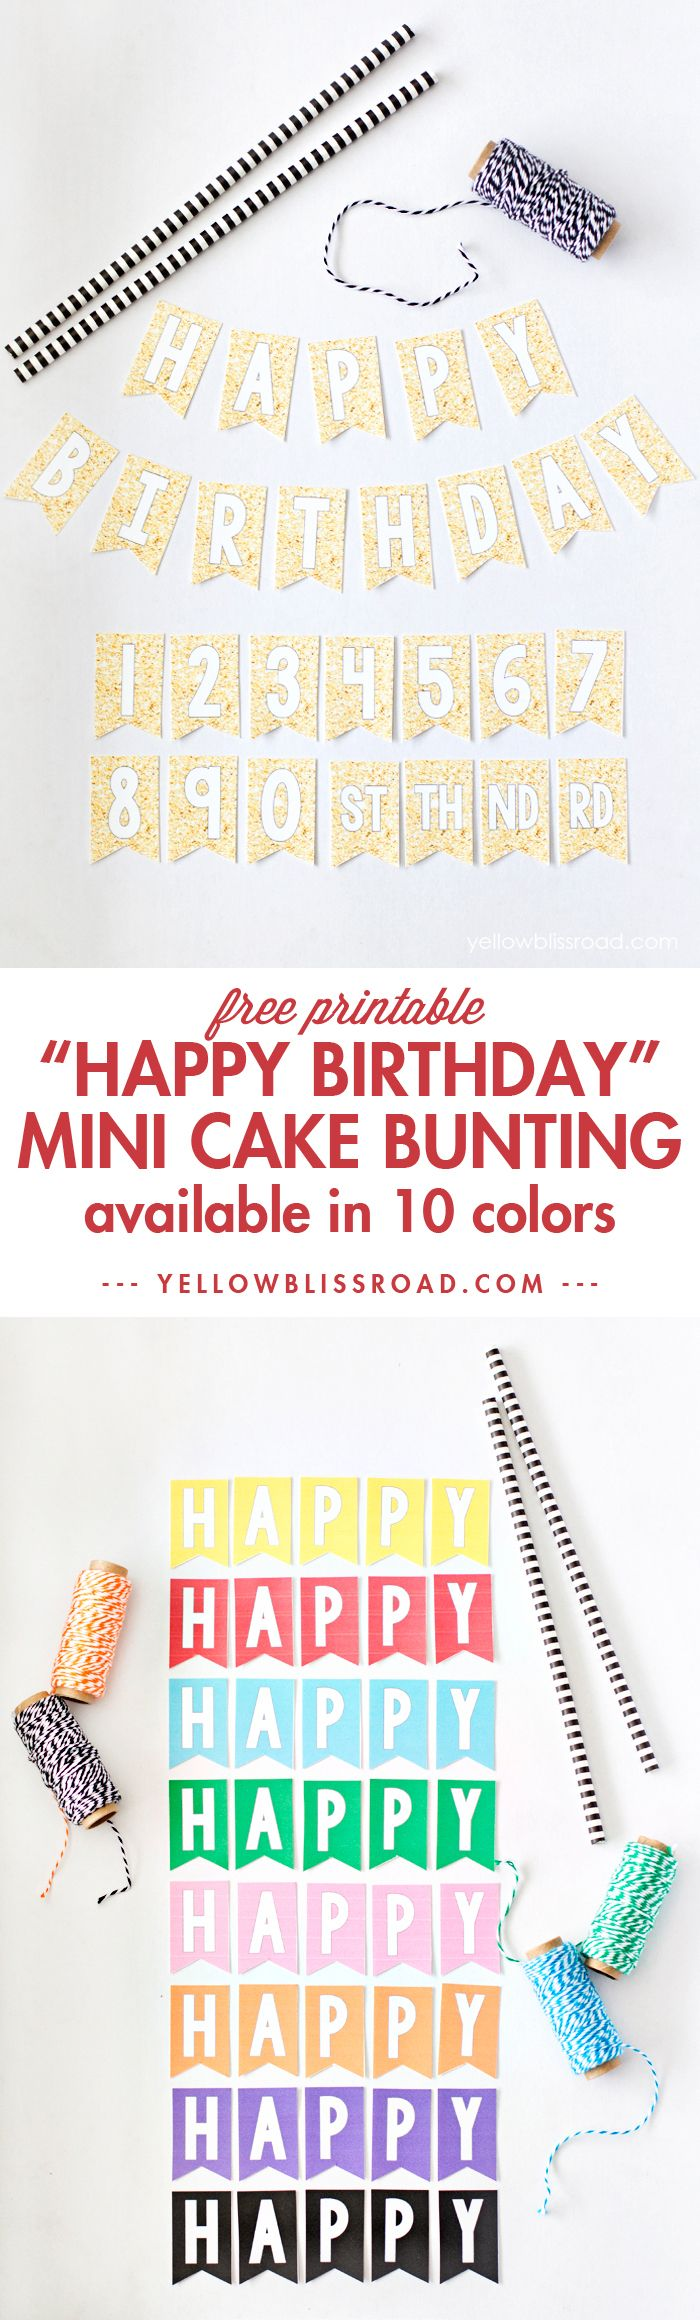 Free Printable Mini Birthday Cake Bunting in a variety of colours - could use for cards